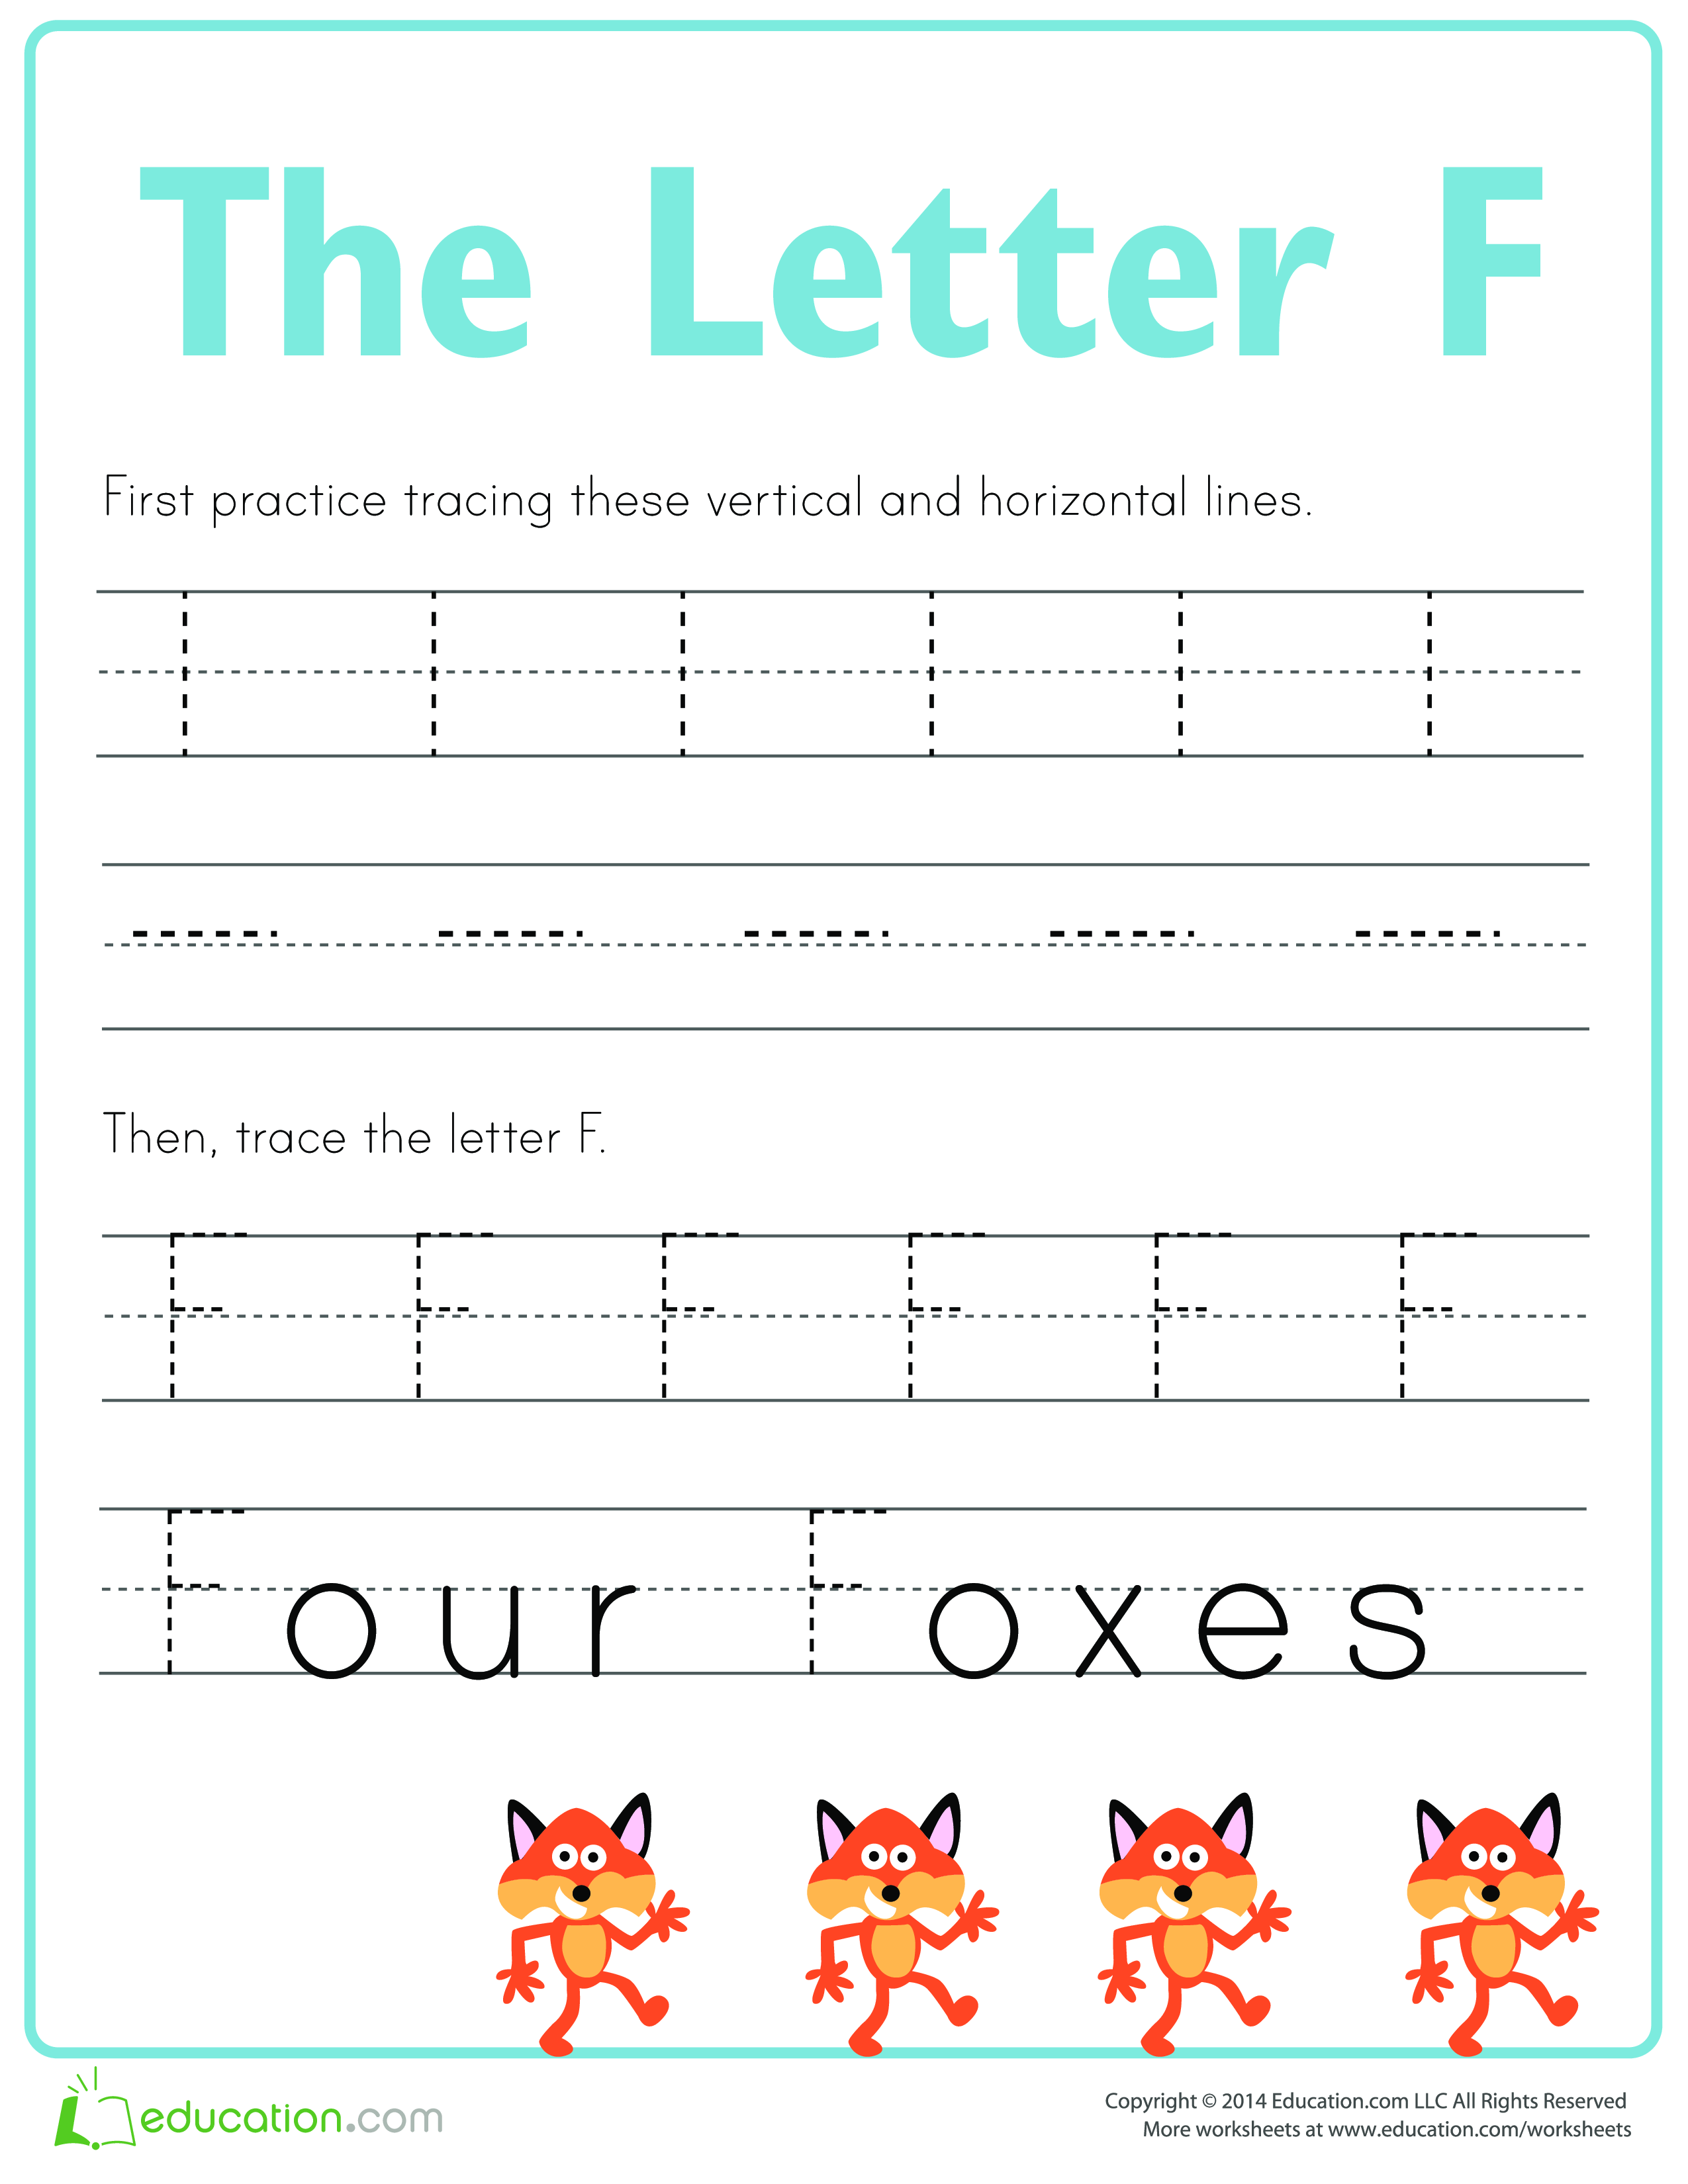 Practice To Write Letter F Learn How To Write Letter F Preschool Worksheets Free Printables Preschool Worksheets Free Preschool Worksheets [ 3300 x 2550 Pixel ]